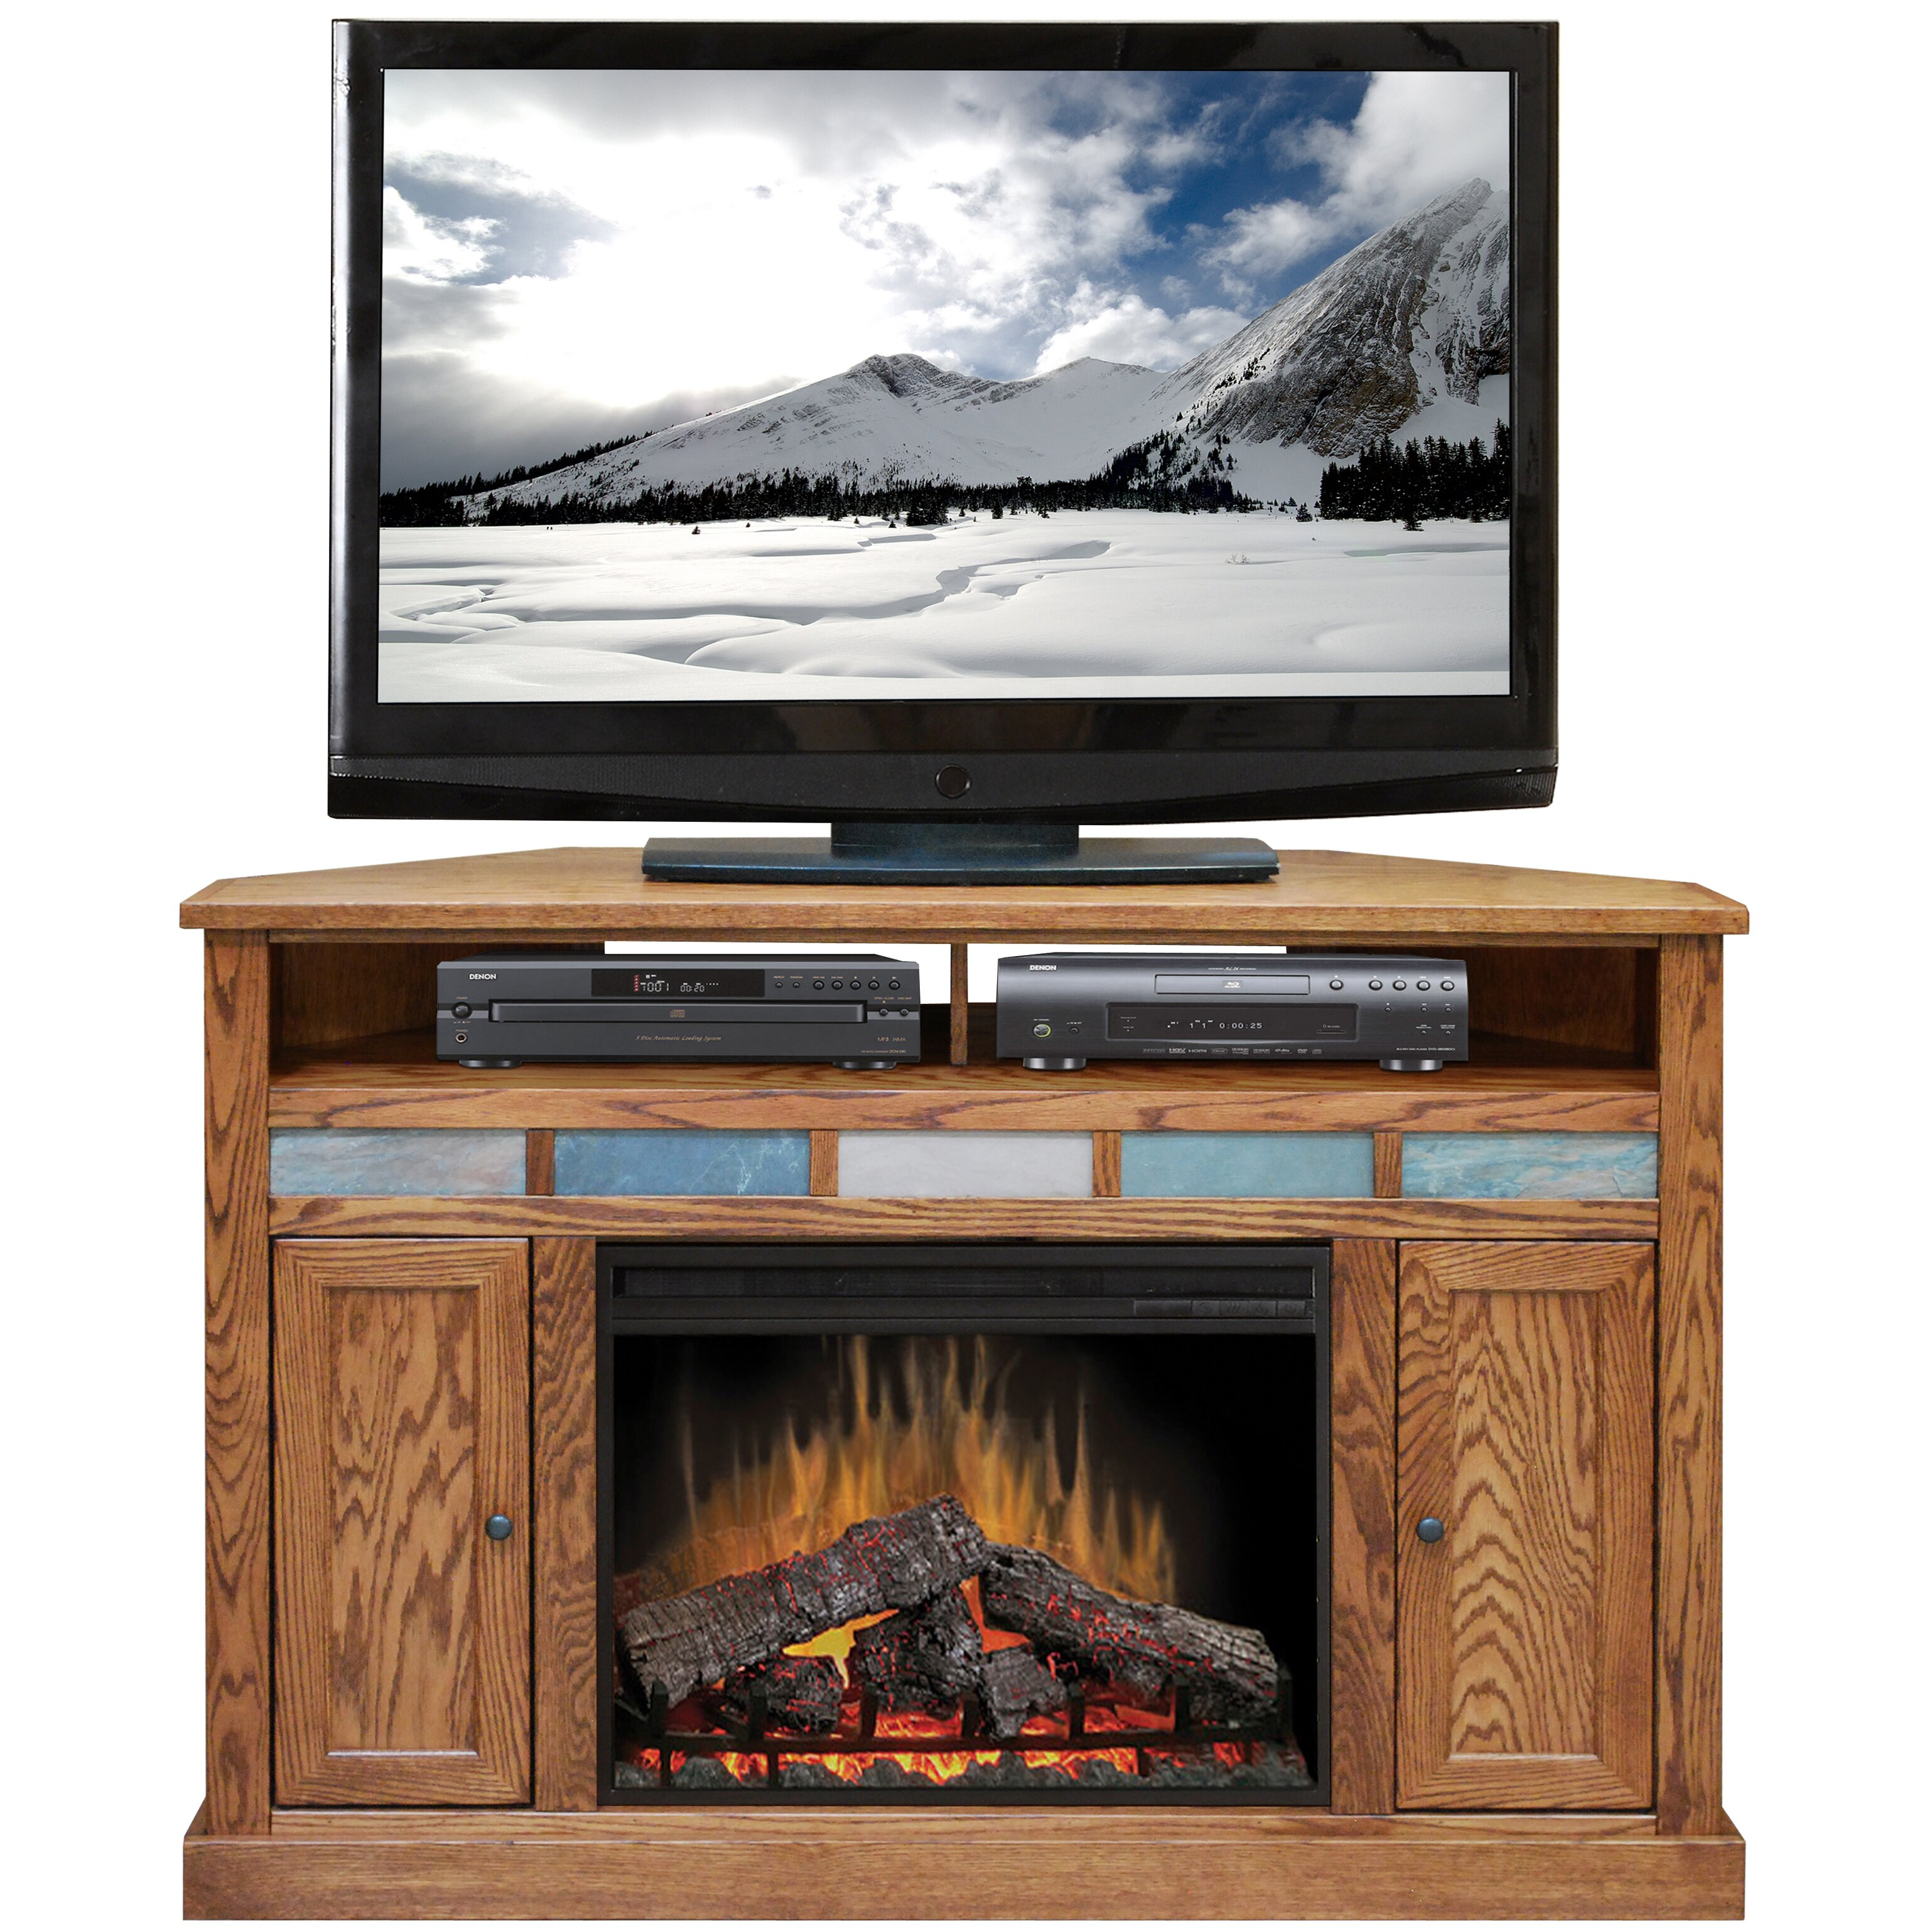 legends furniture oak creek tv stand with electric fireplace reviews wayfair. Black Bedroom Furniture Sets. Home Design Ideas